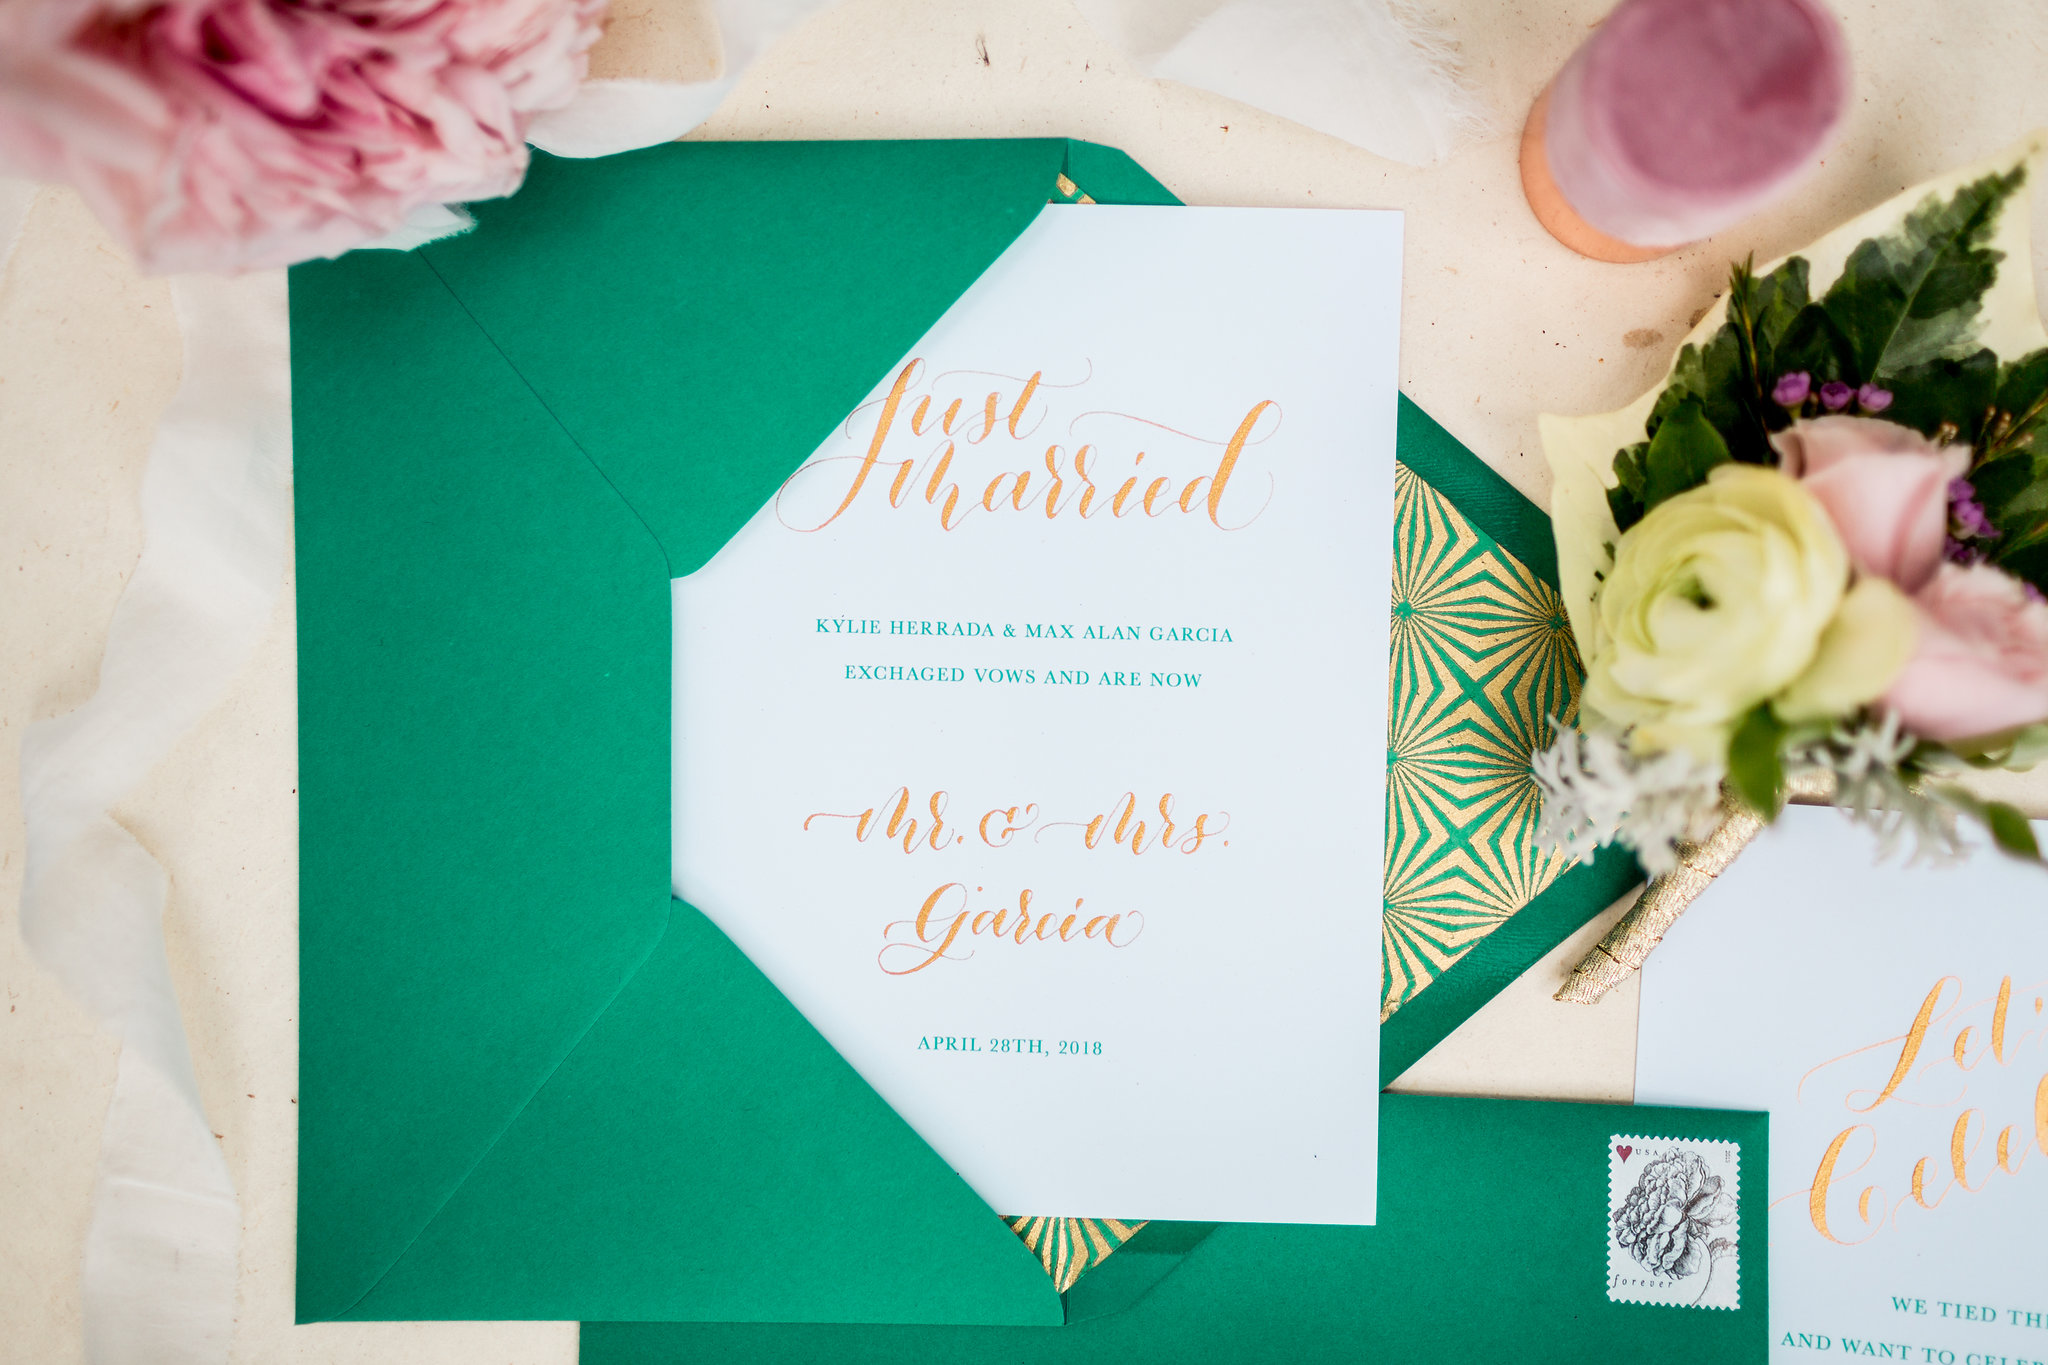 Elopement Announcement Esmerald and Gold Inspired by Paperloveme Calligraphy25.jpg